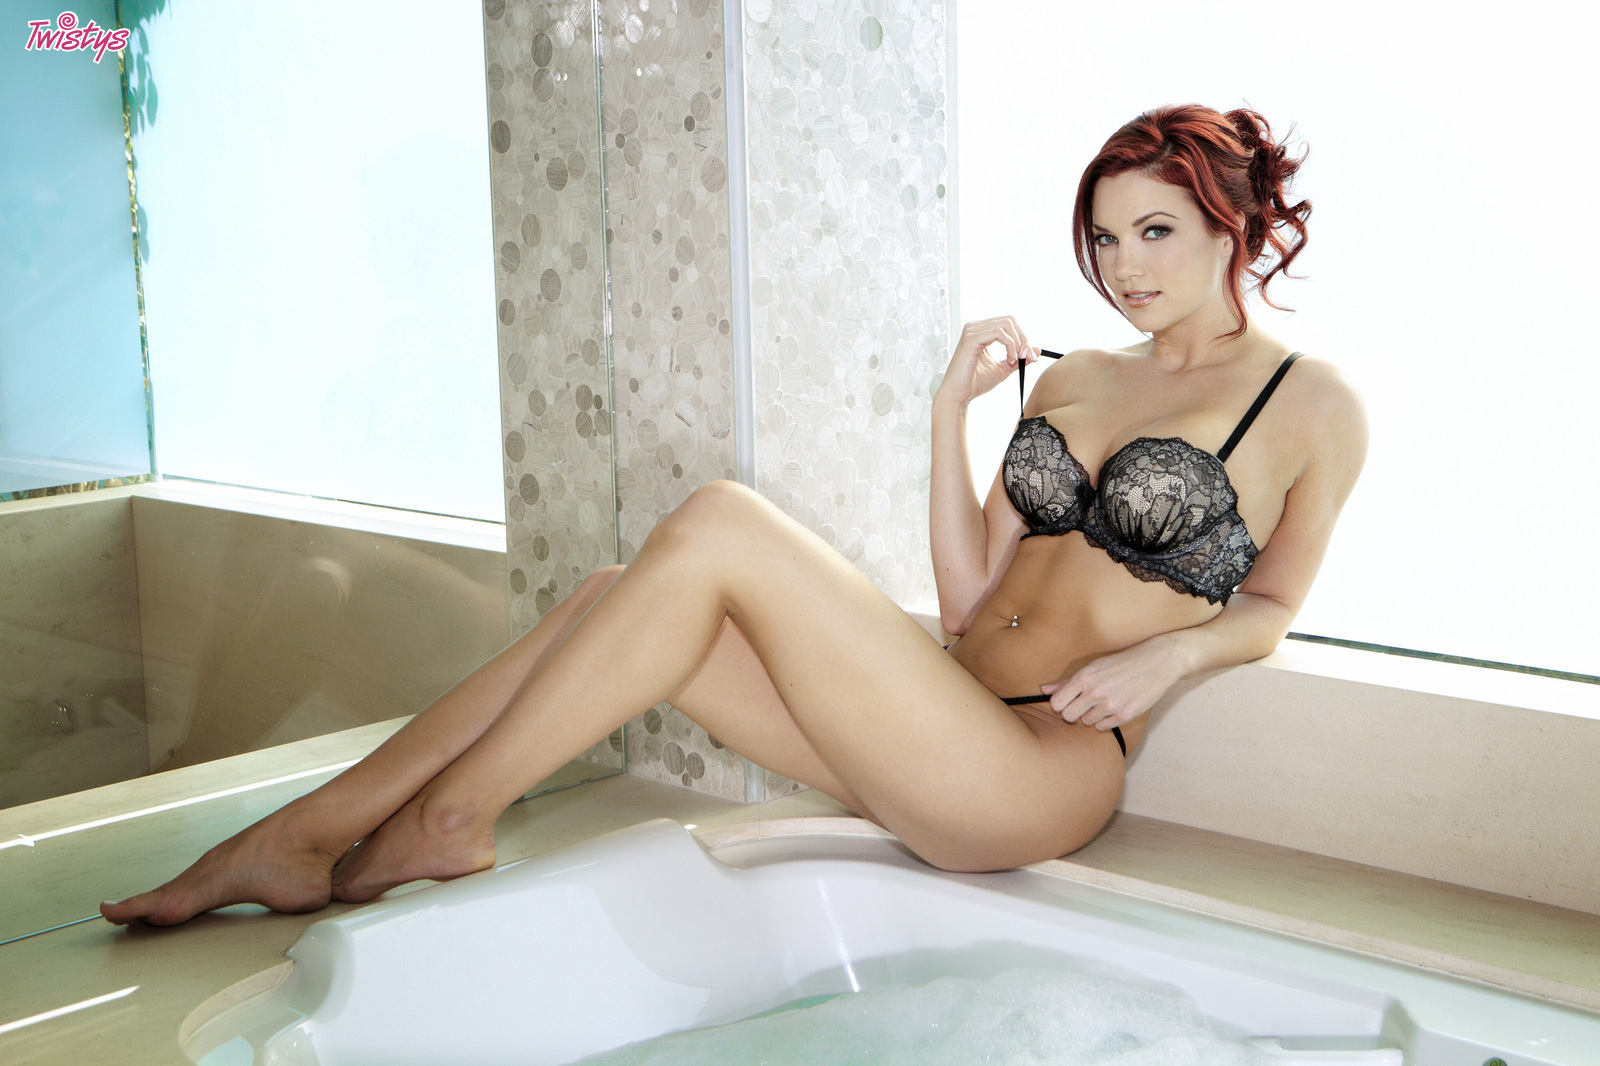 Come Play In The Bubbles.. featuring Jayden Cole | Twistys.com